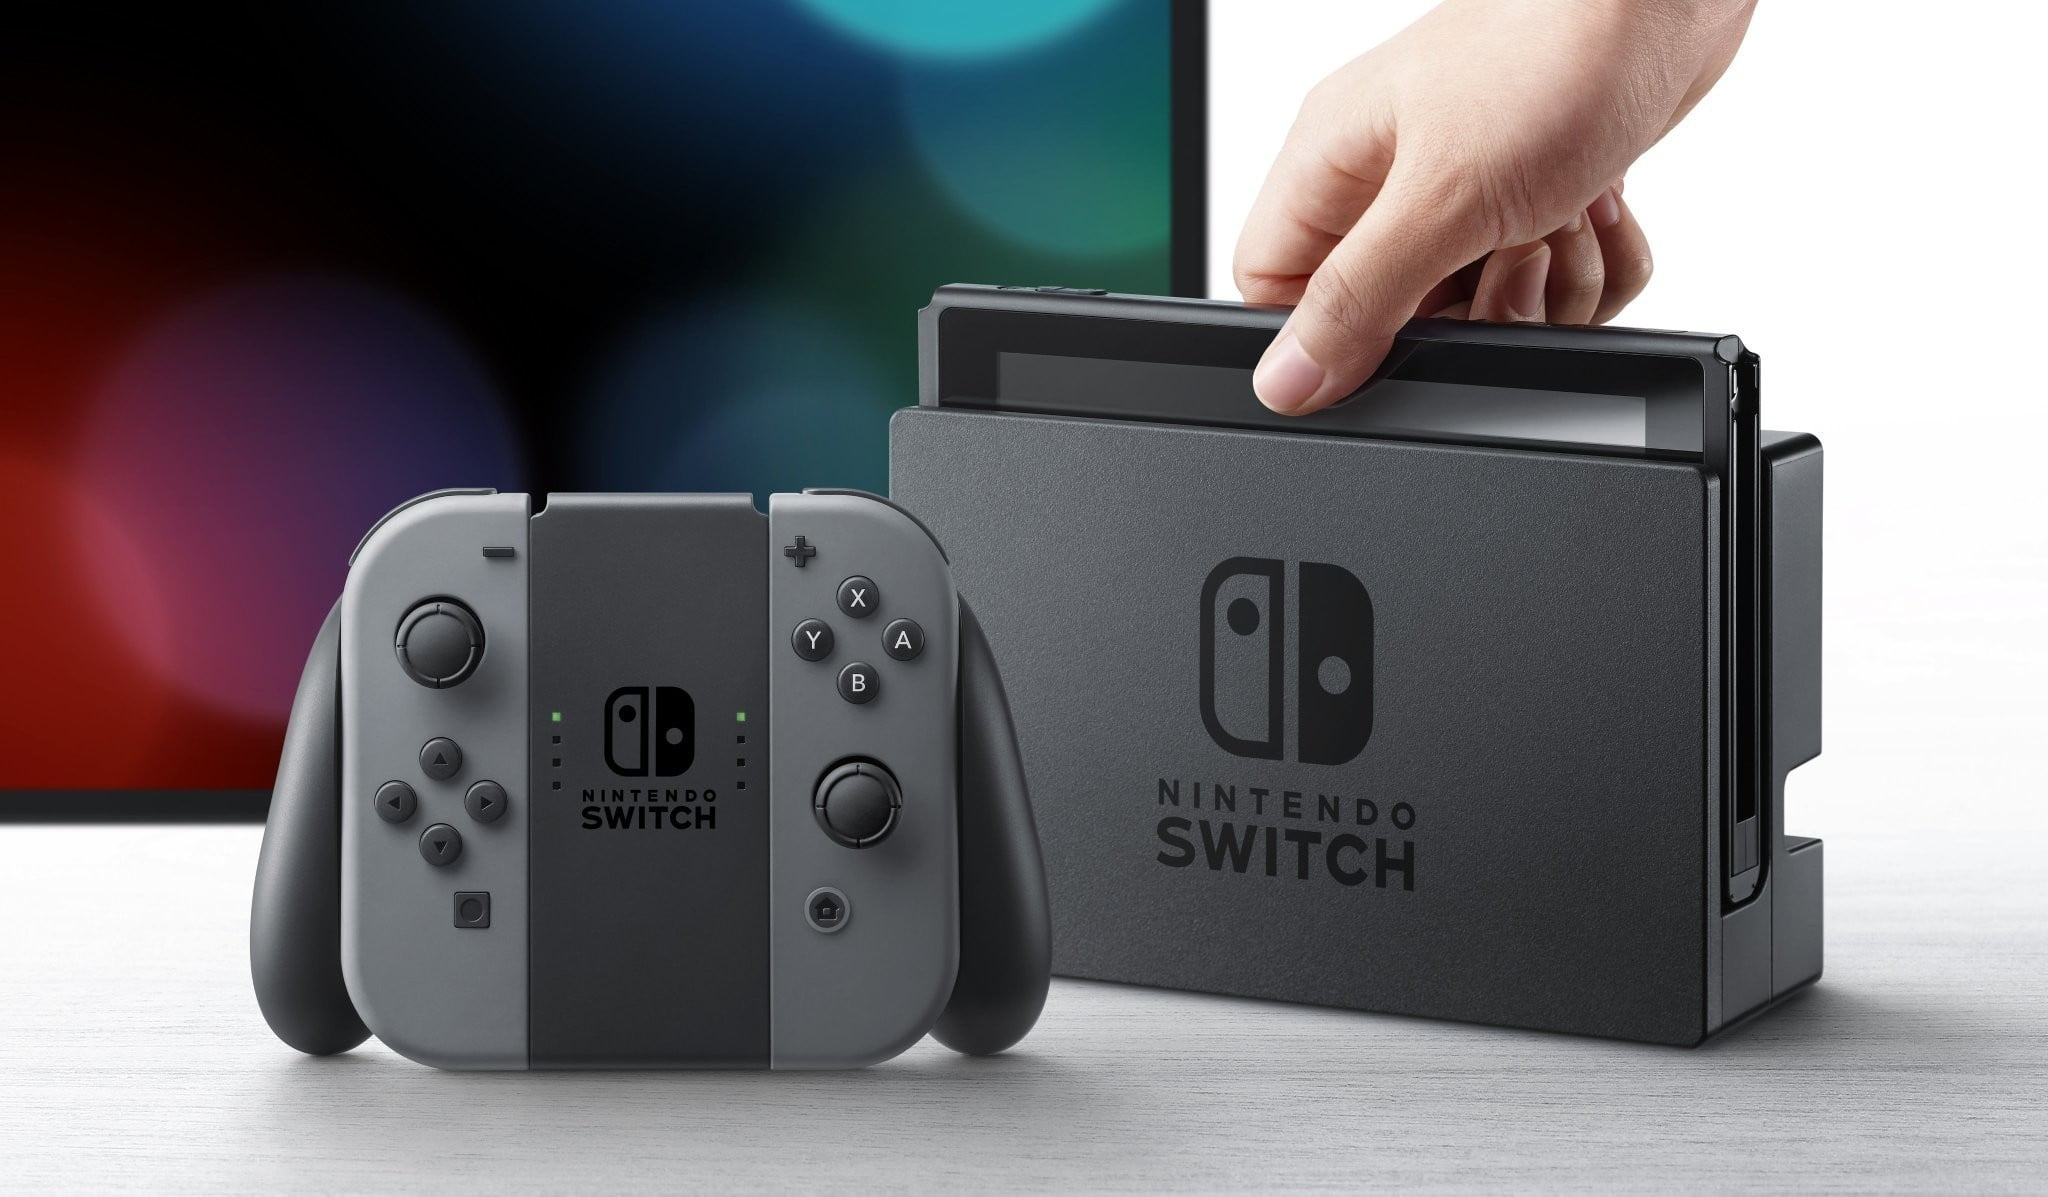 Original Nintendo Switch inbound